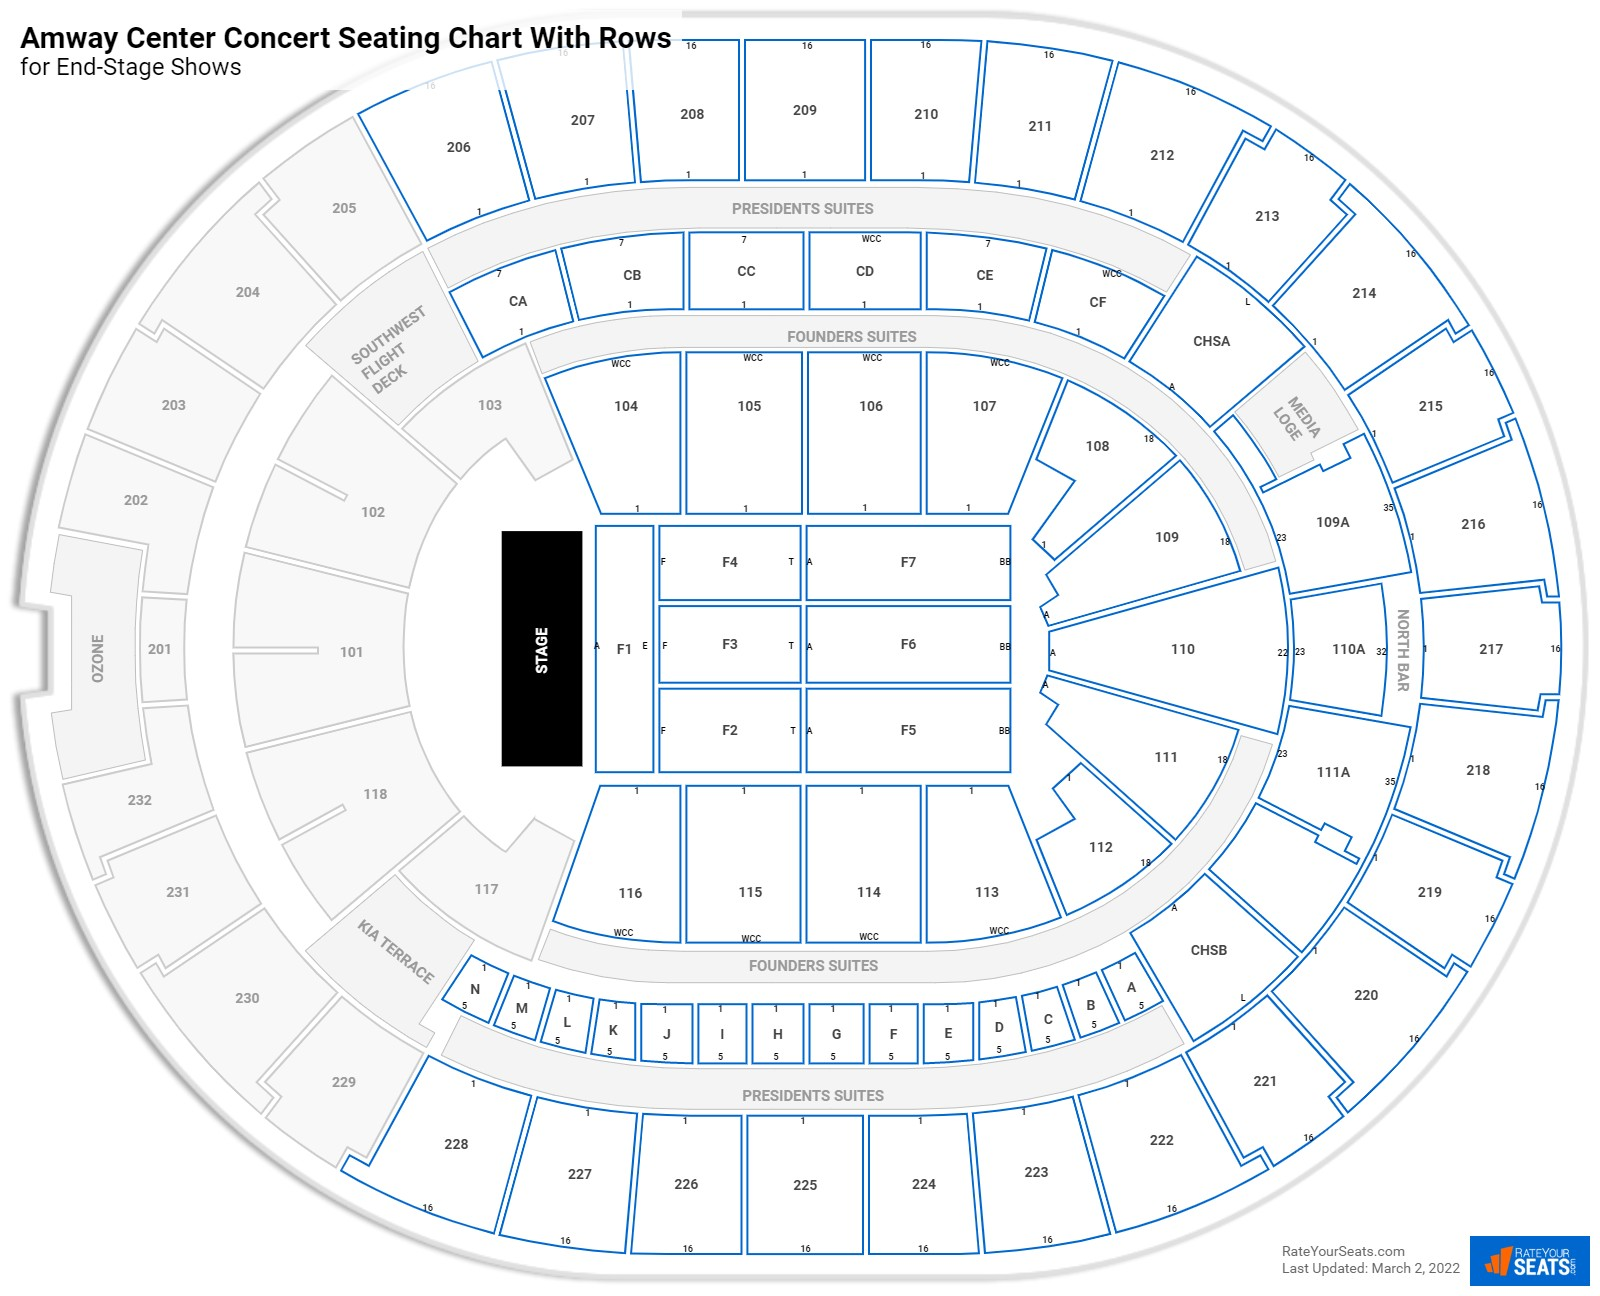 Amway Center seating chart with rows concert